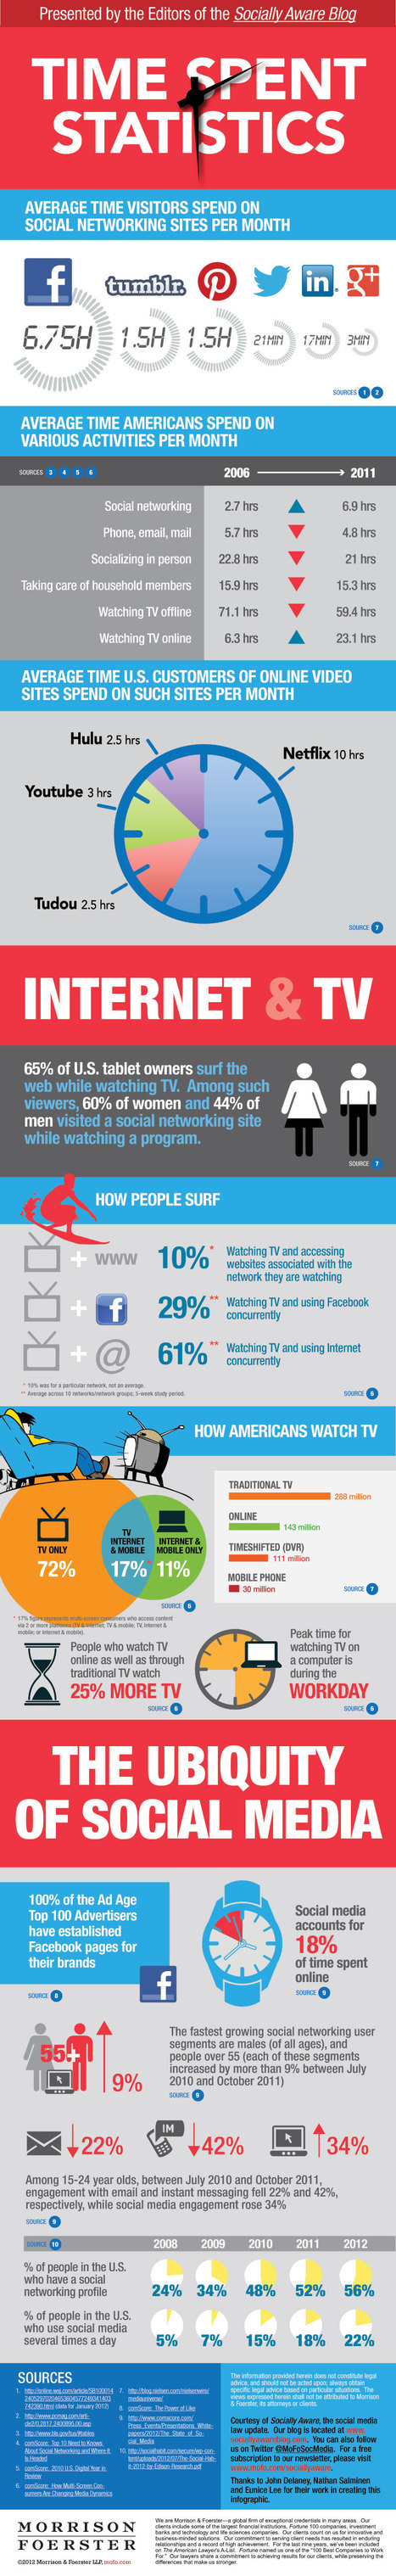 The Growing Impact of Social Media #infographic /@BerriePelser | NewMedia Social | Scoop.it